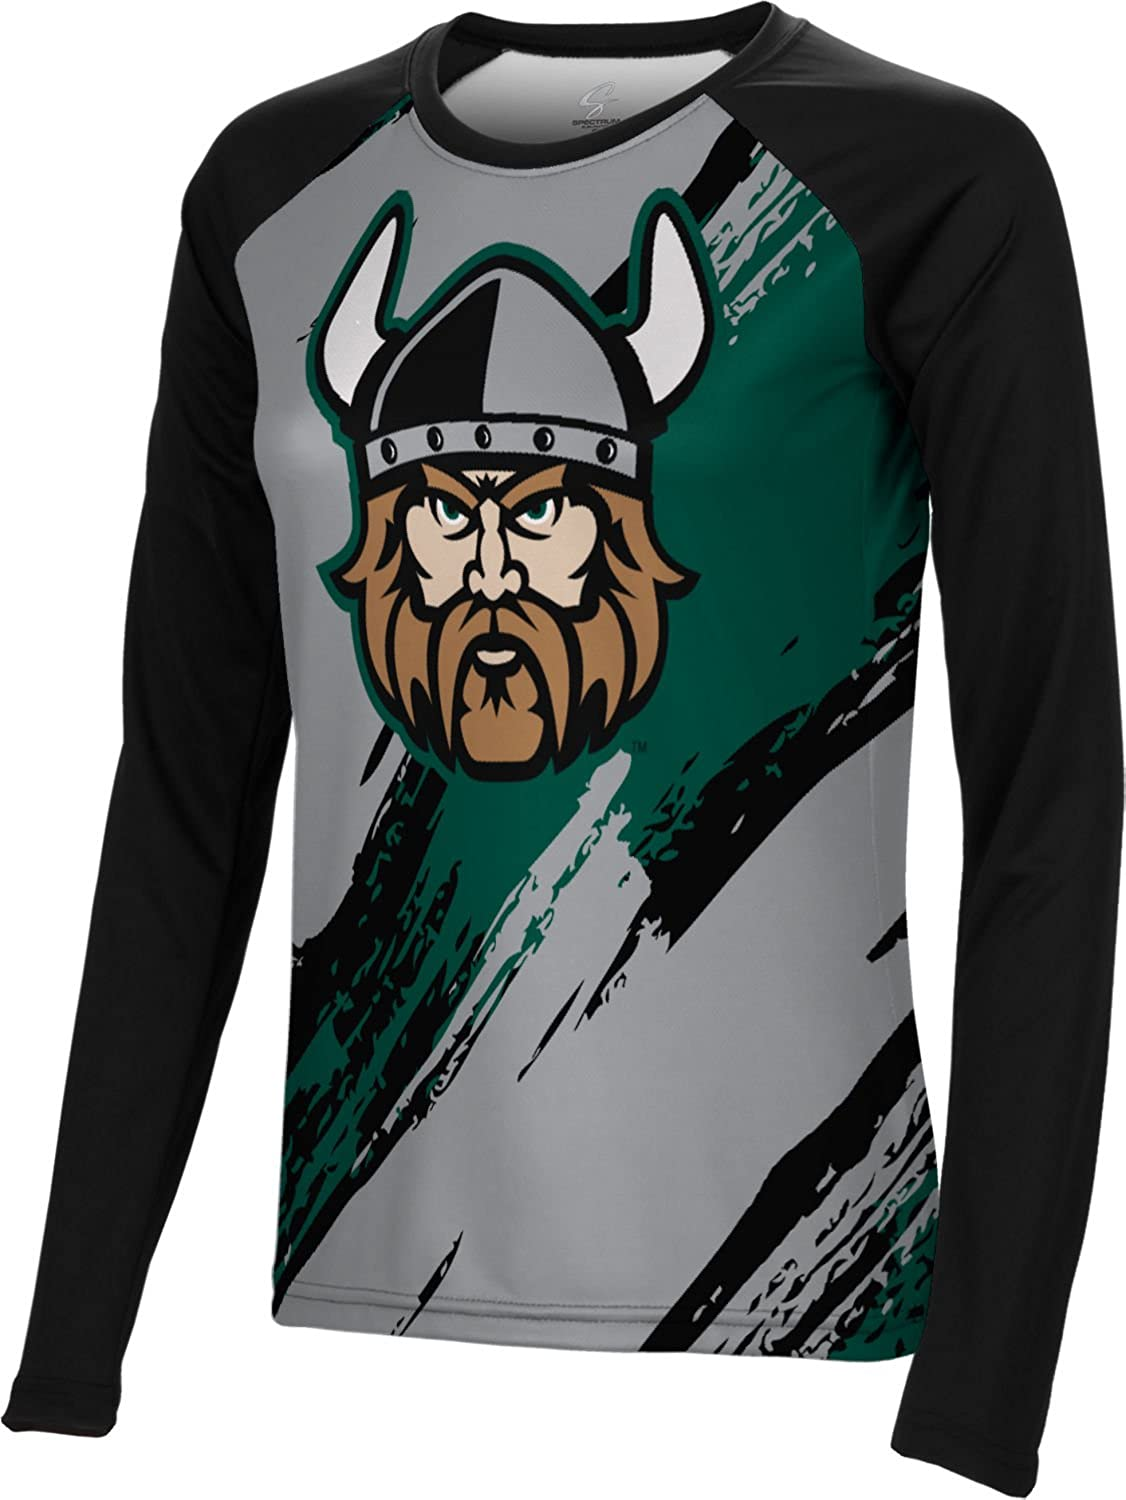 Spectrum Sublimation Women's Cleveland State University Scratch Long Sleeve